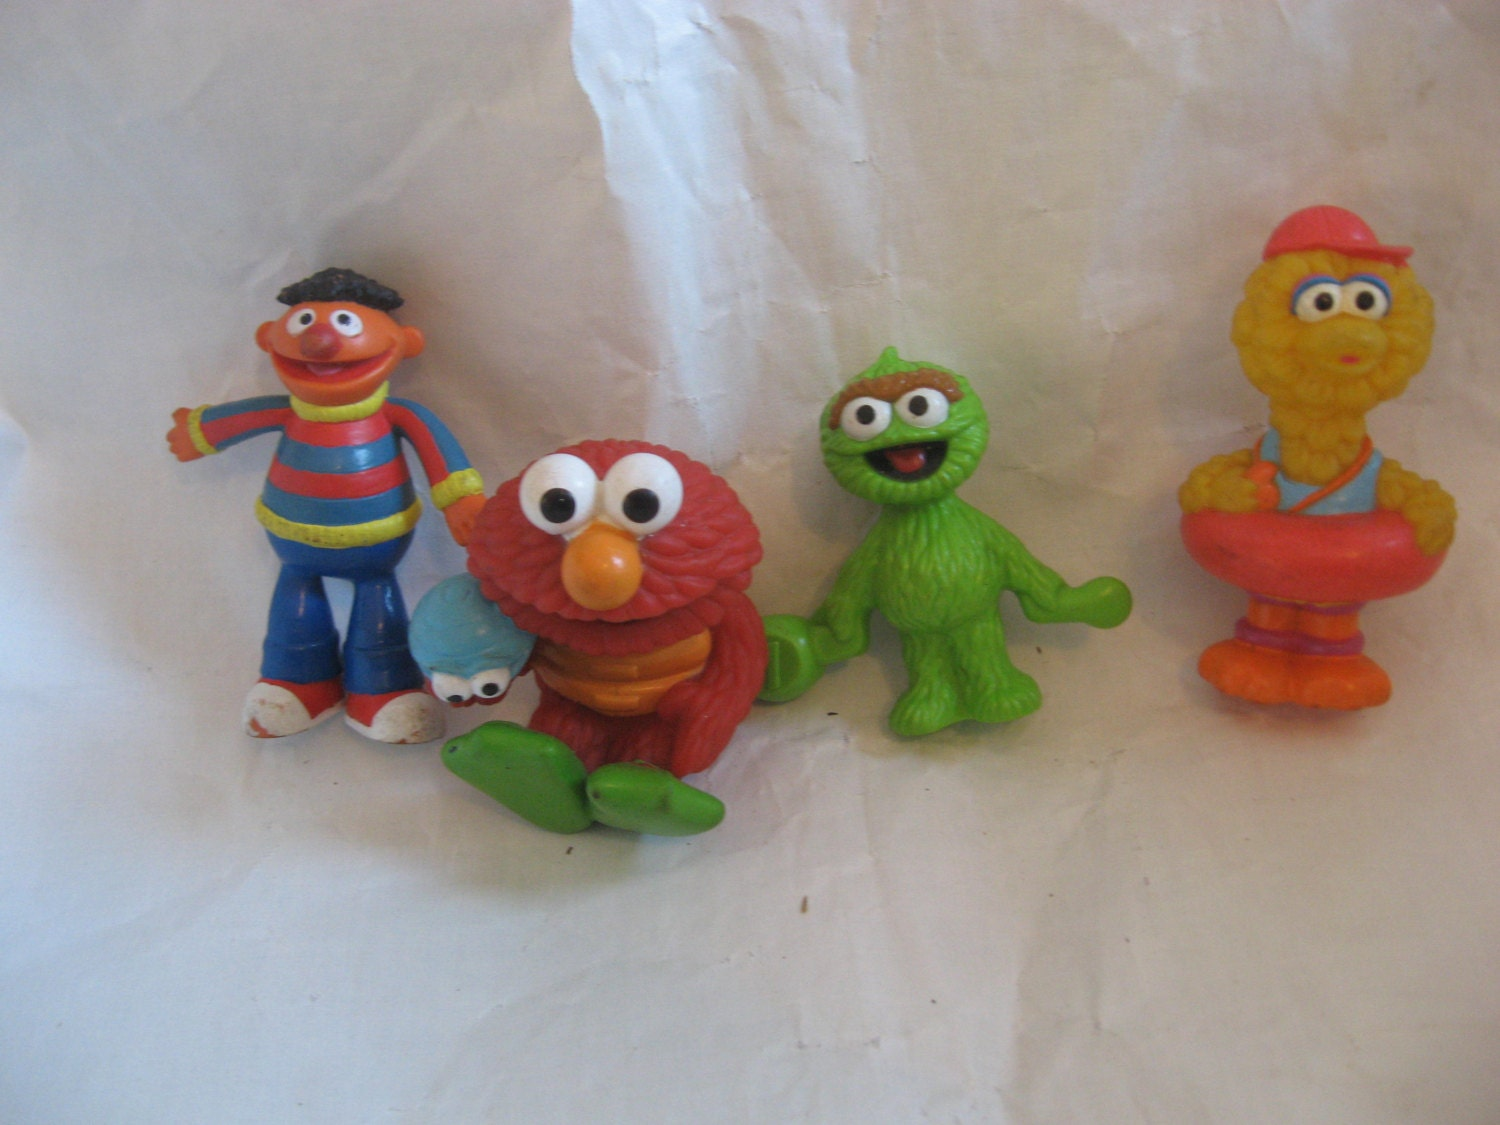 4 SESAME STREET FIGURINES by CECISCOLLECTIBLES on Etsy